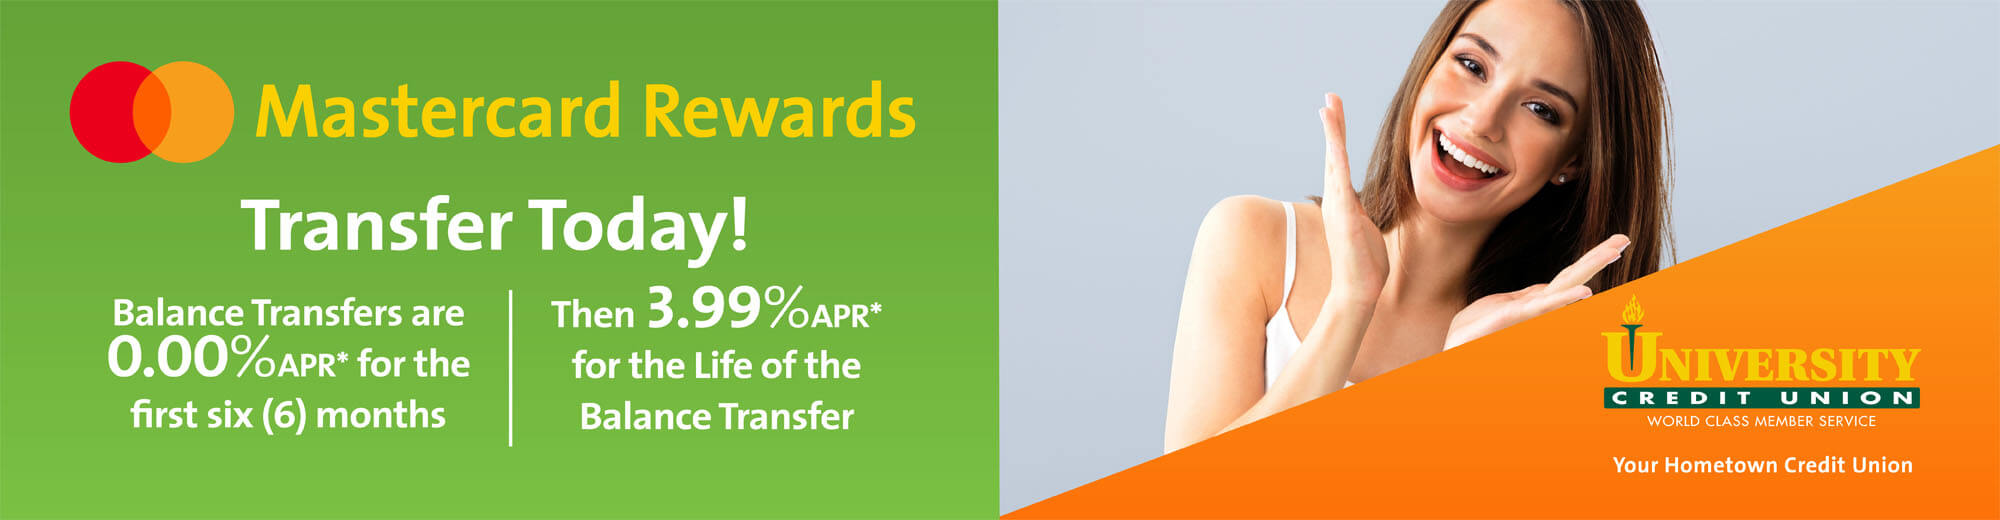 0.00% on Balance Transfers to your Rewards Mastercard